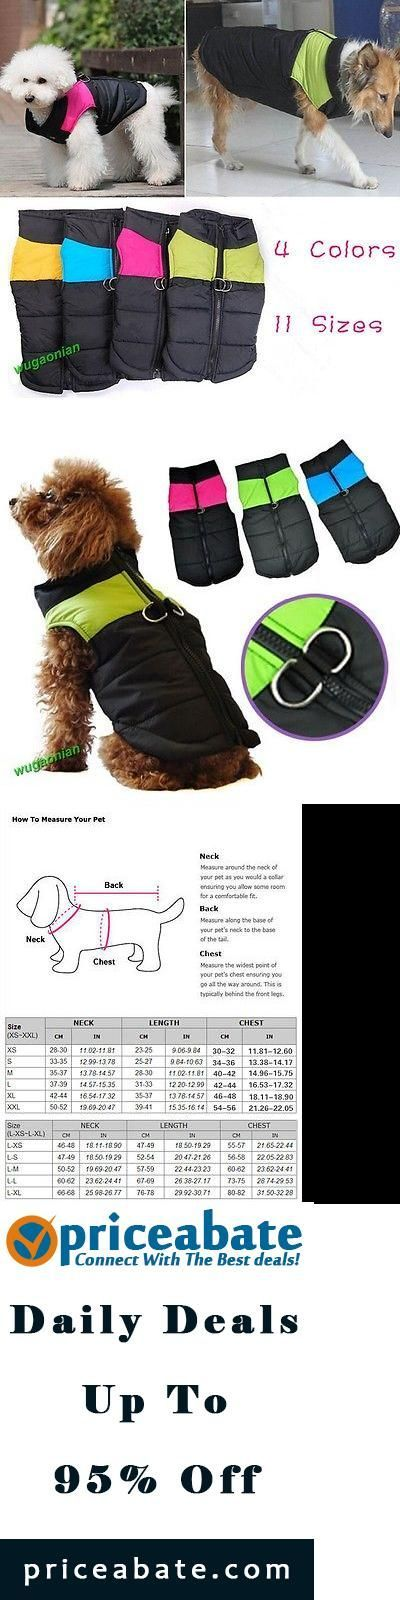 #priceabatedeals Comfortable Small Medium Large Big Pet Dog Clothes Winter Warm Vest Jacket Coat  - Buy This Item Now For Only: $13.77